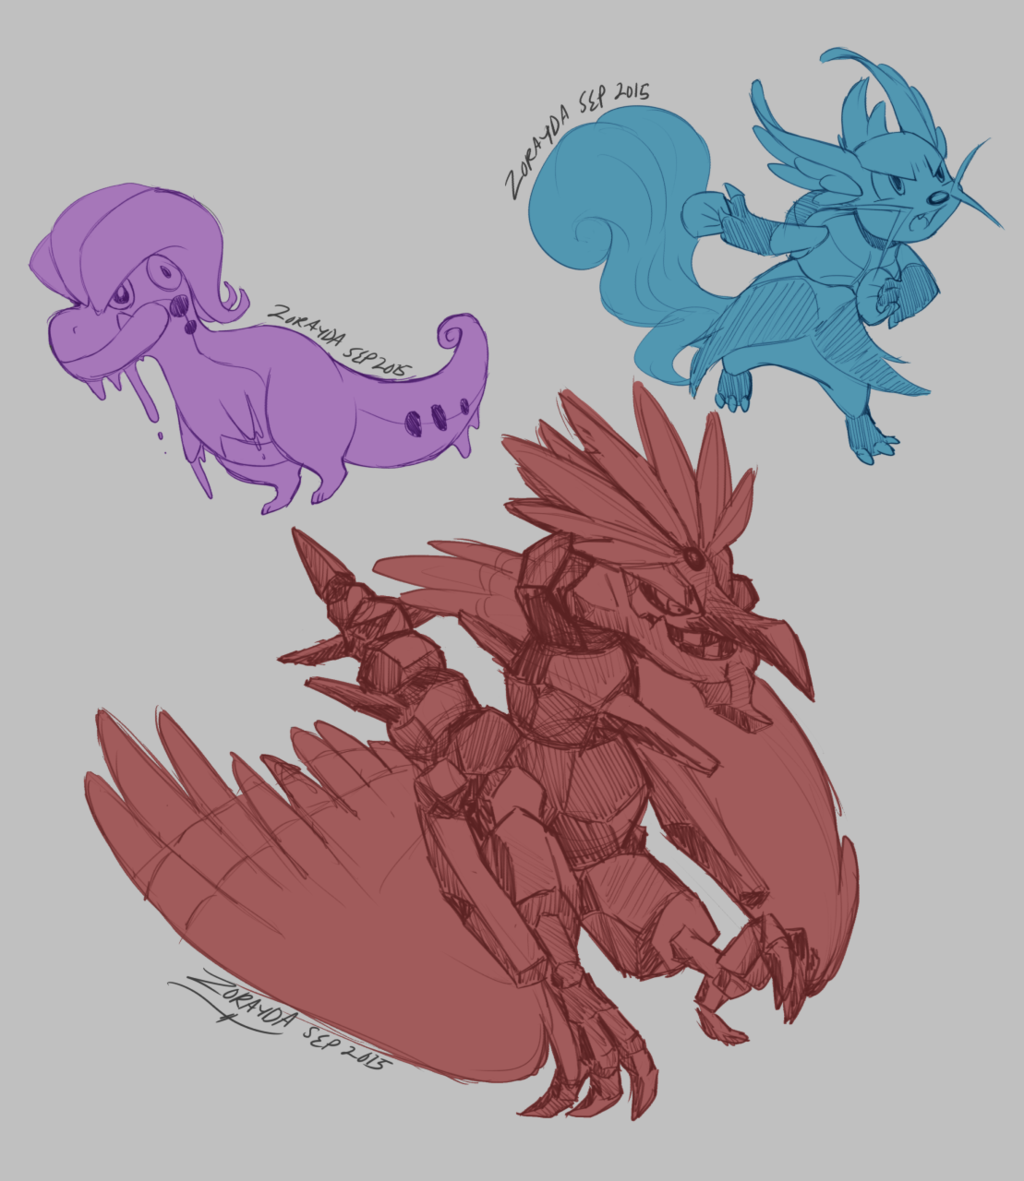 Daily Doodles 9/20/2015